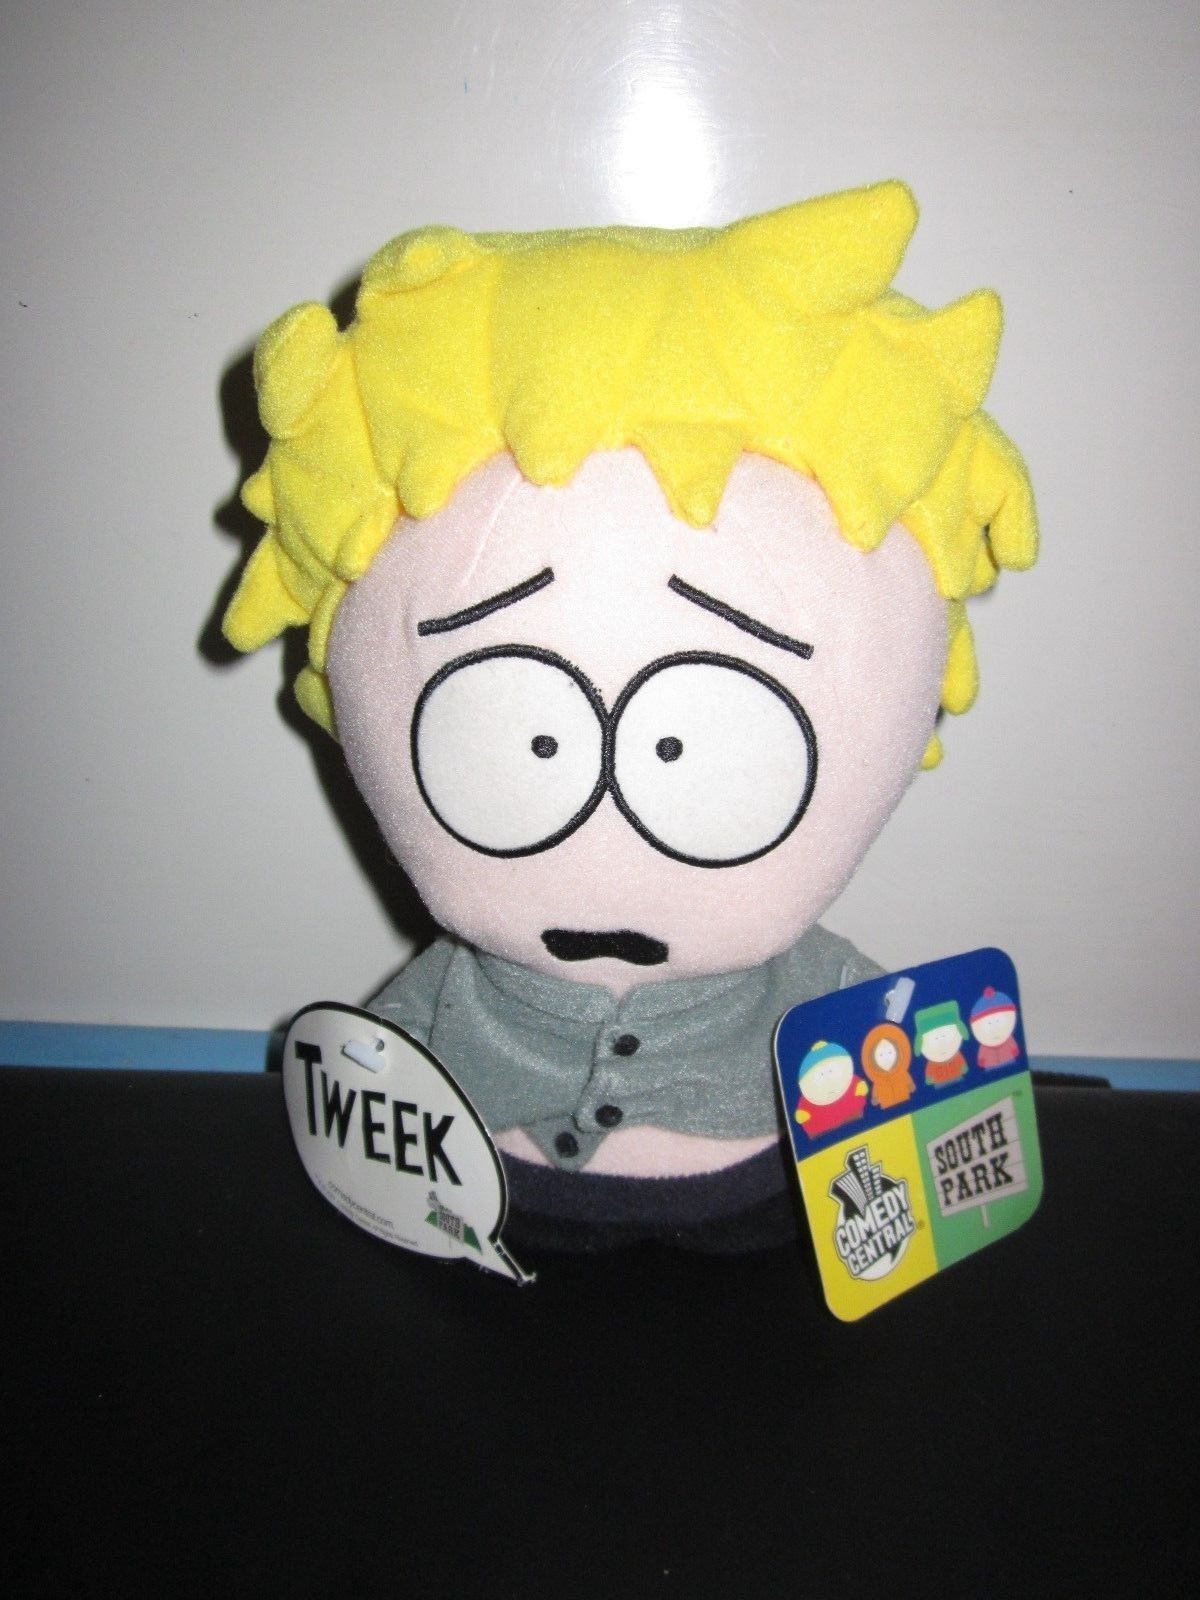 Rare South Park Shaking Tweek Plush Toy Doll Figure Fun